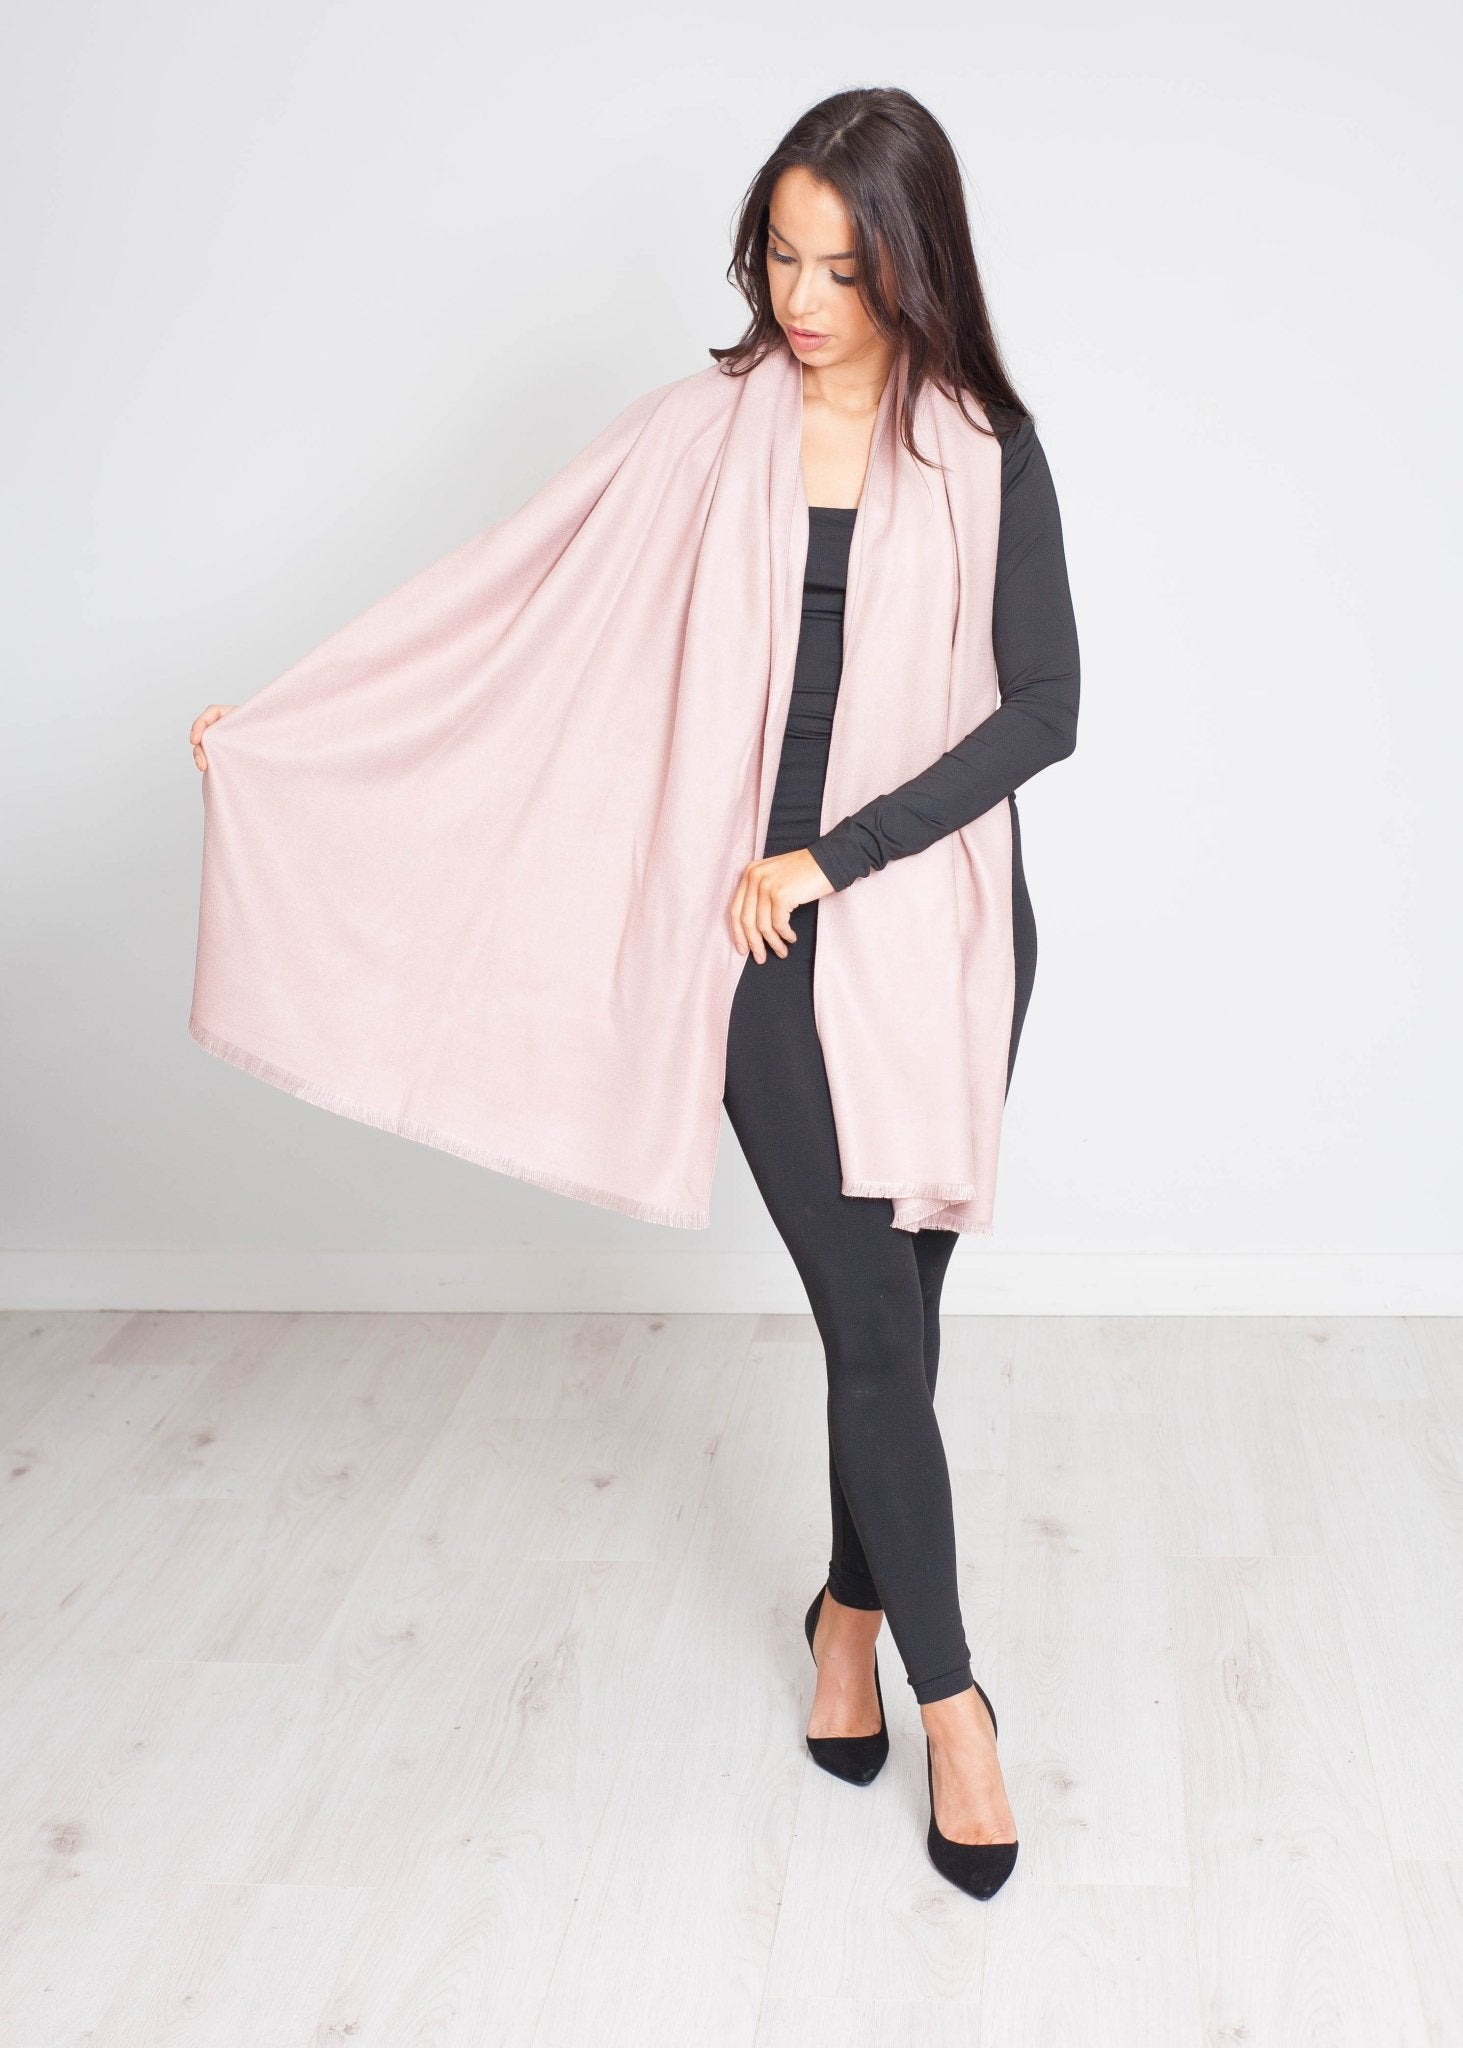 Blair Luxury Scarf In Rose - The Walk in Wardrobe